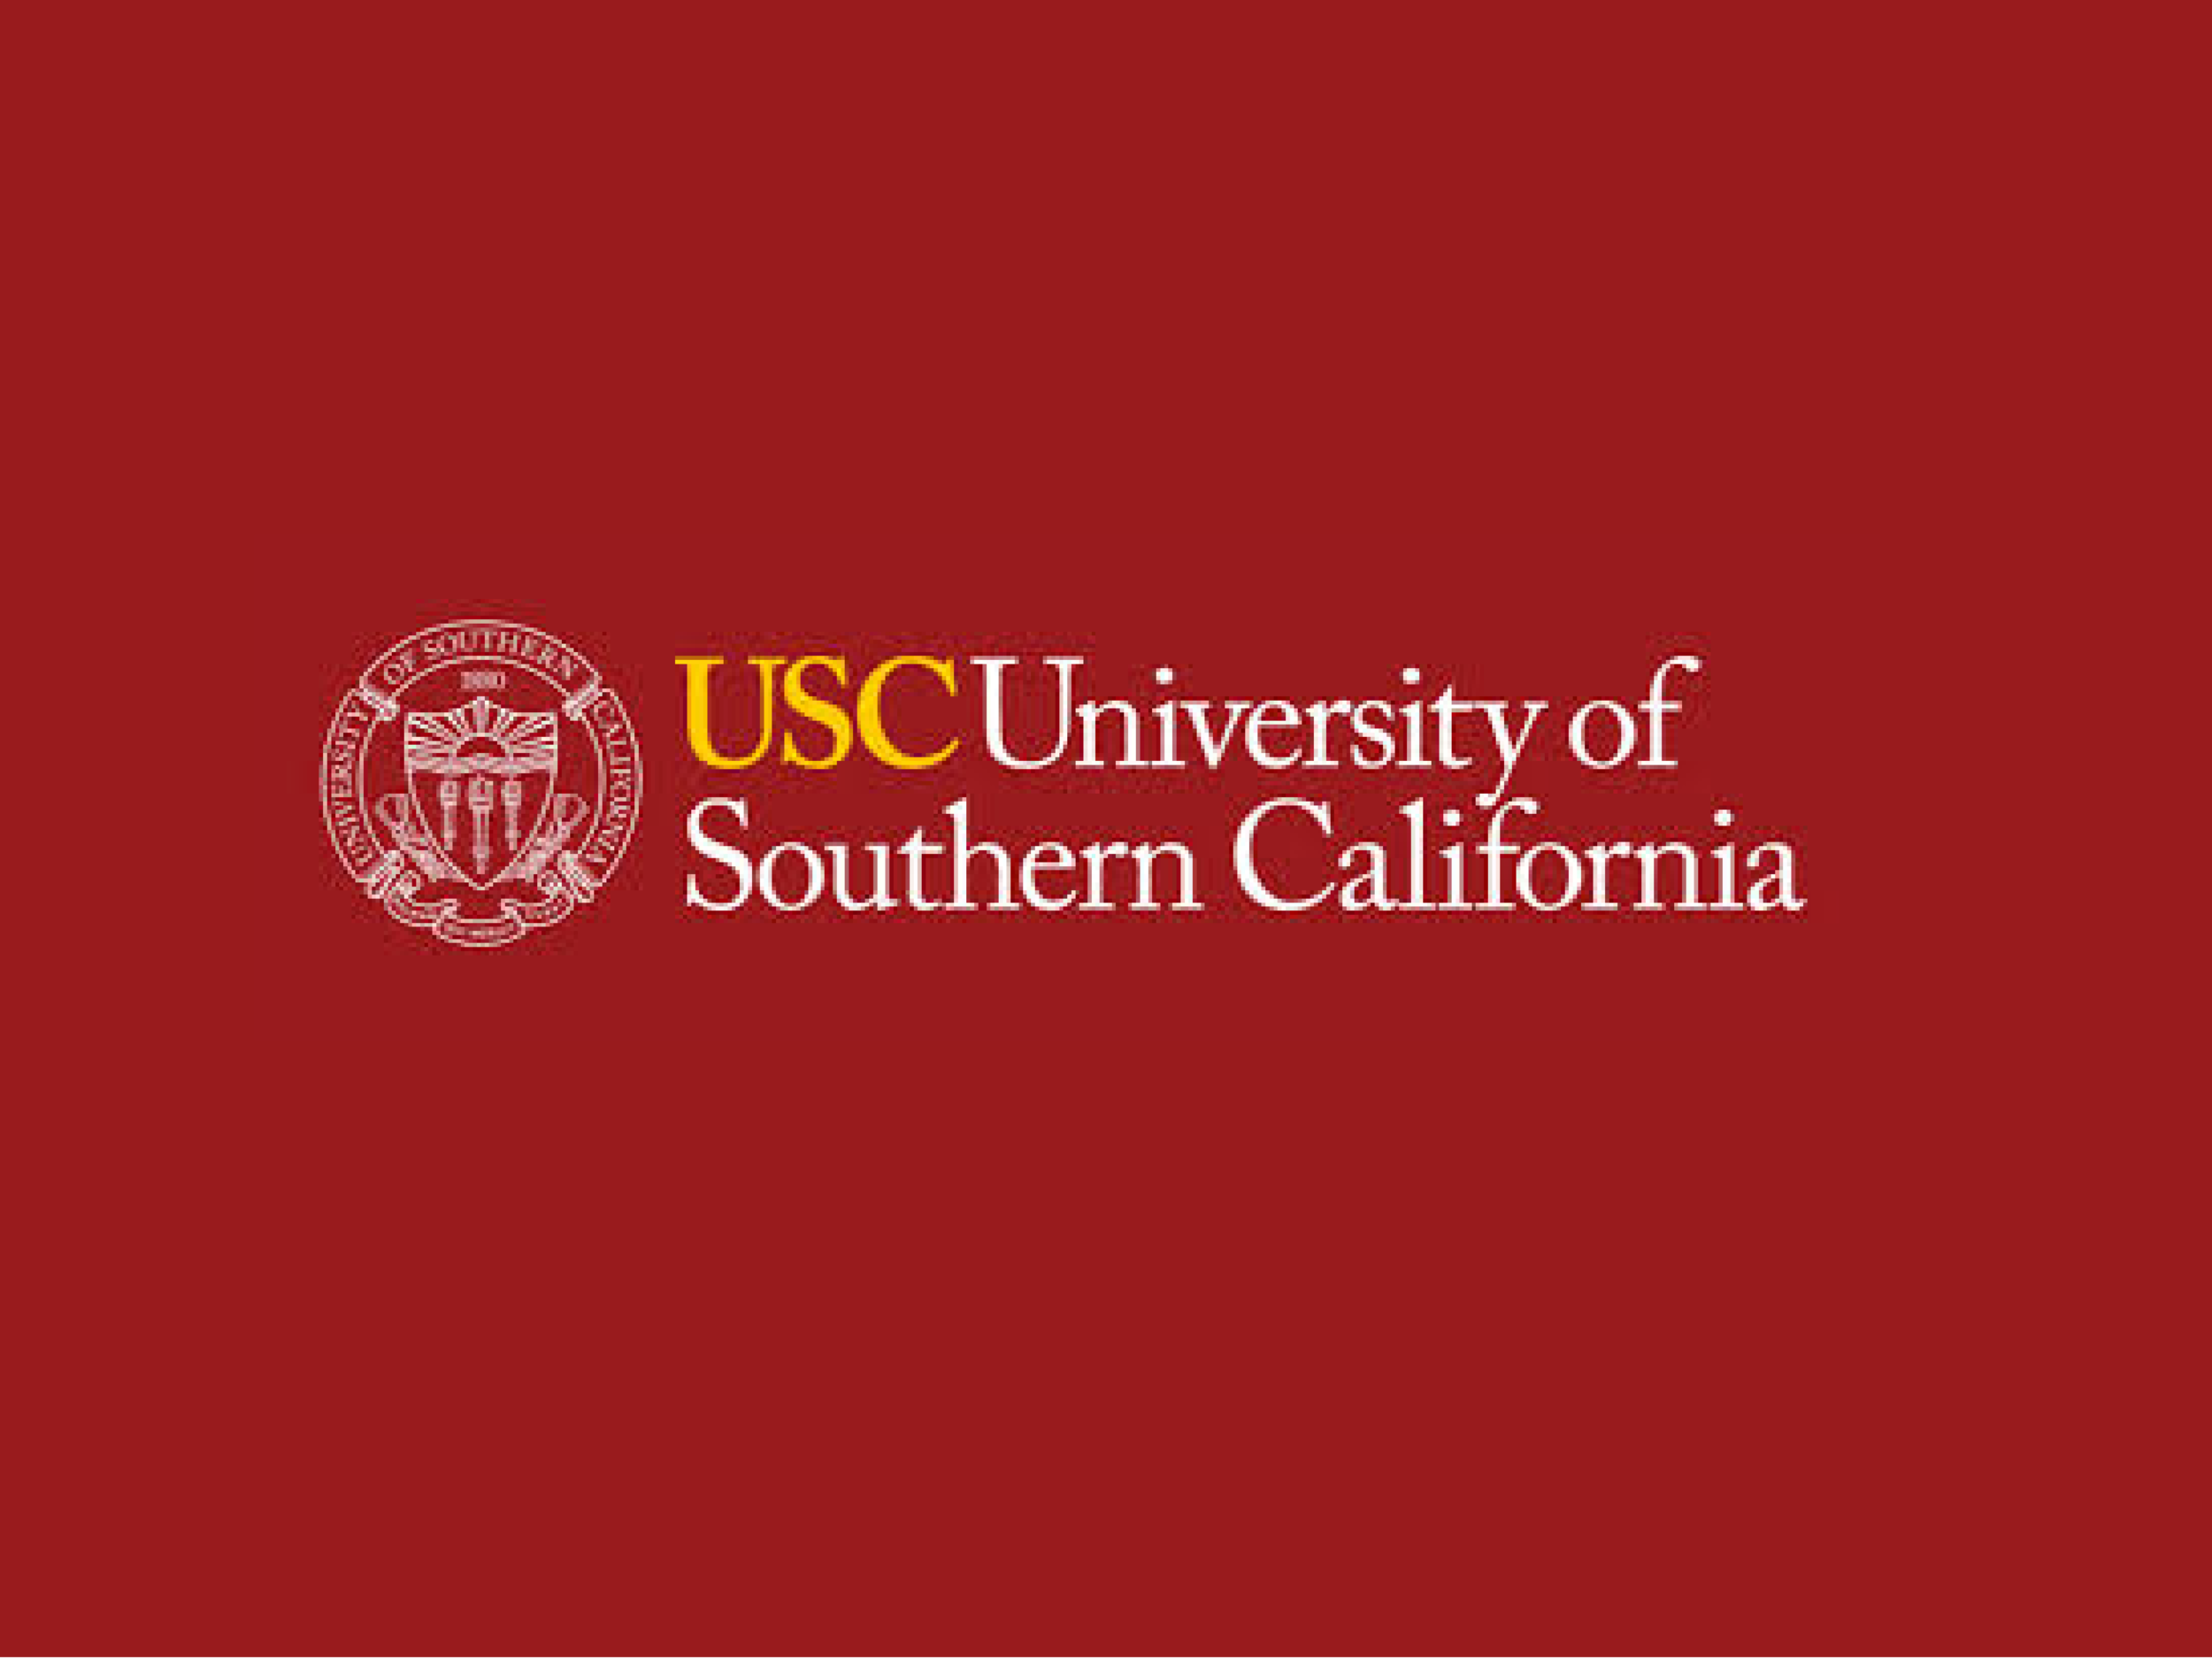 - School's policy: USC does not offer need-base aid.